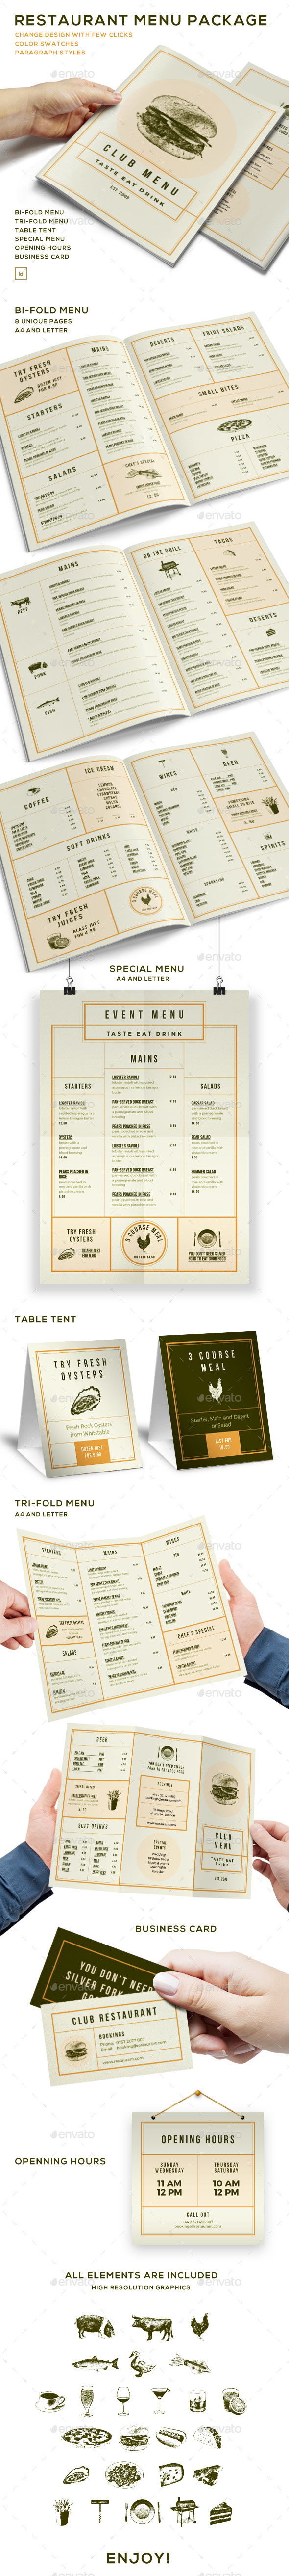 Elegant Food Menu - Restaurant Package - Food Menus Print Templates